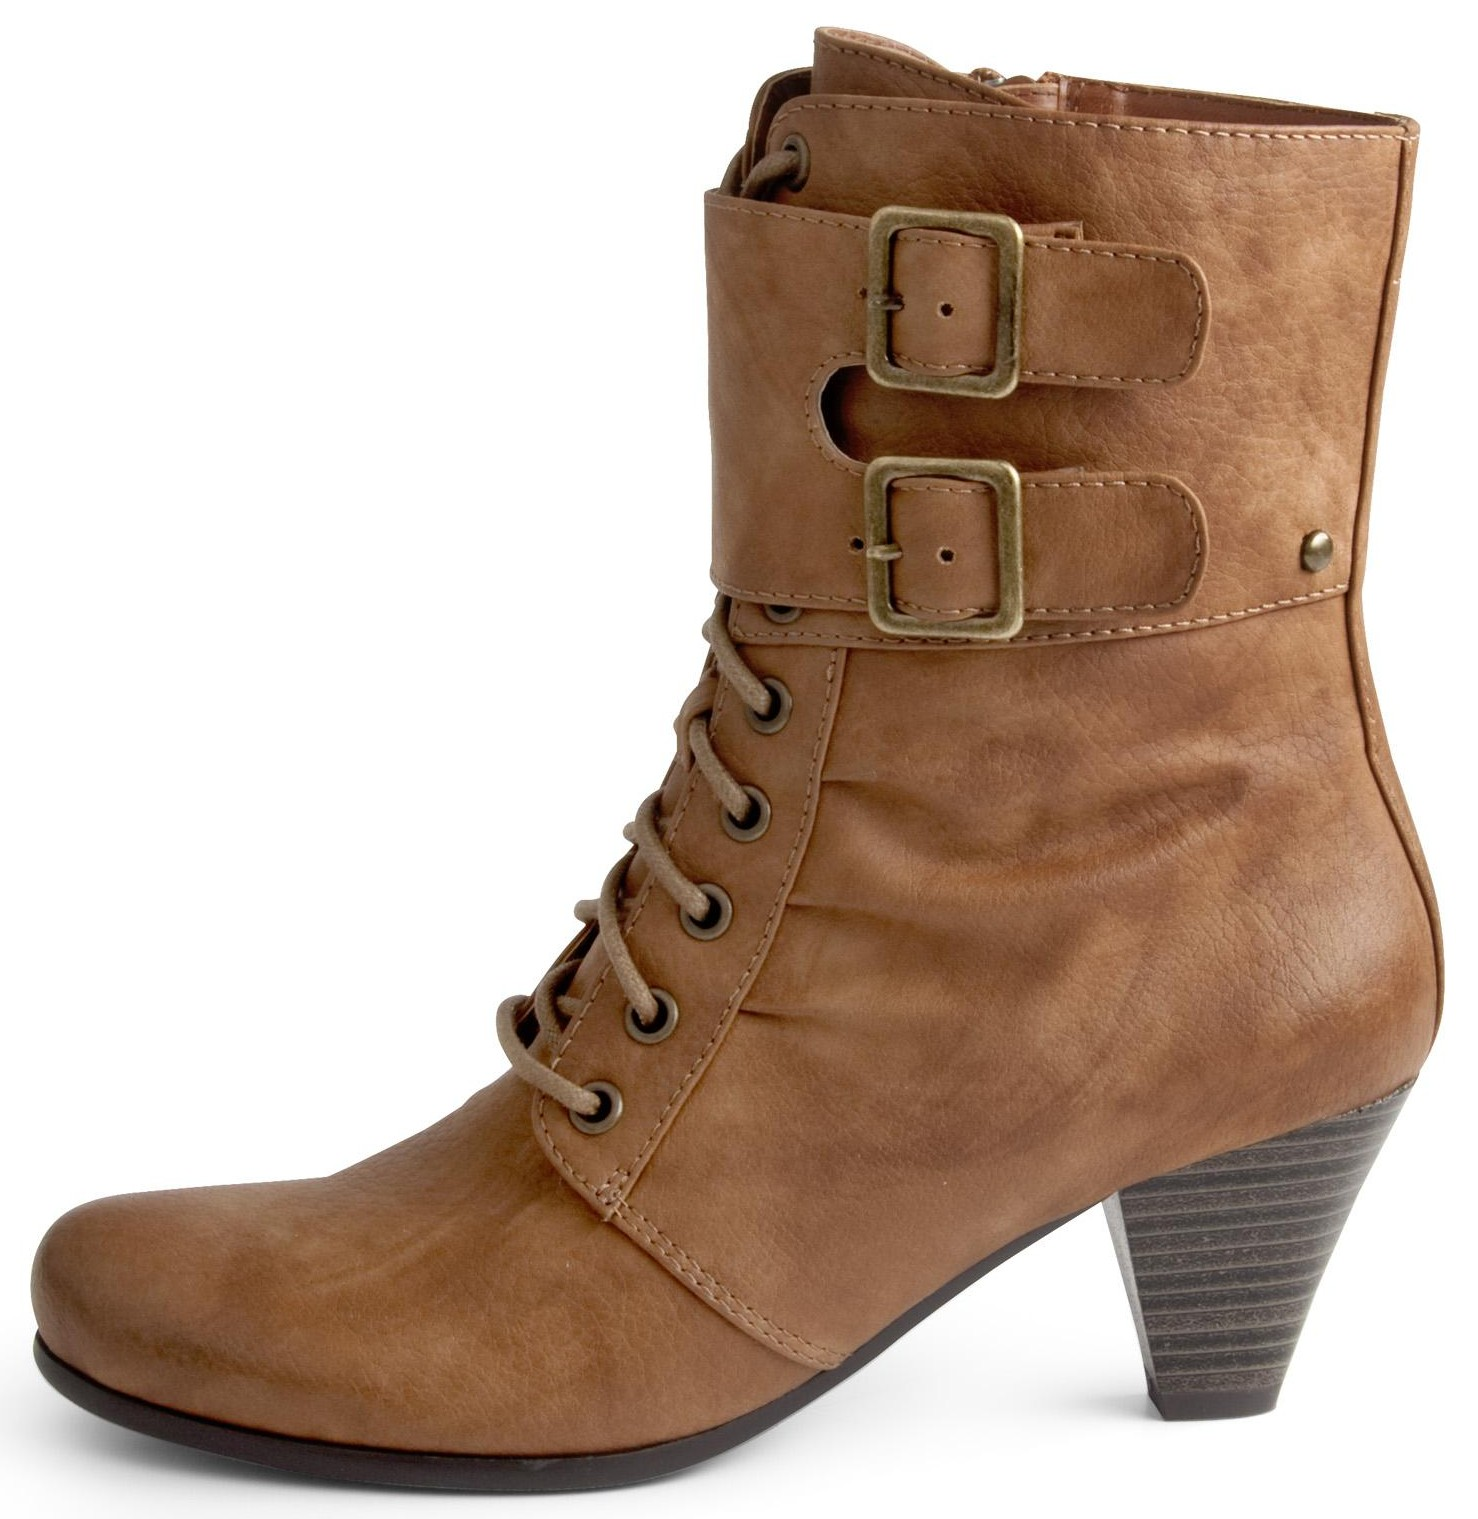 Fall Boots For Women KJWf7C6G